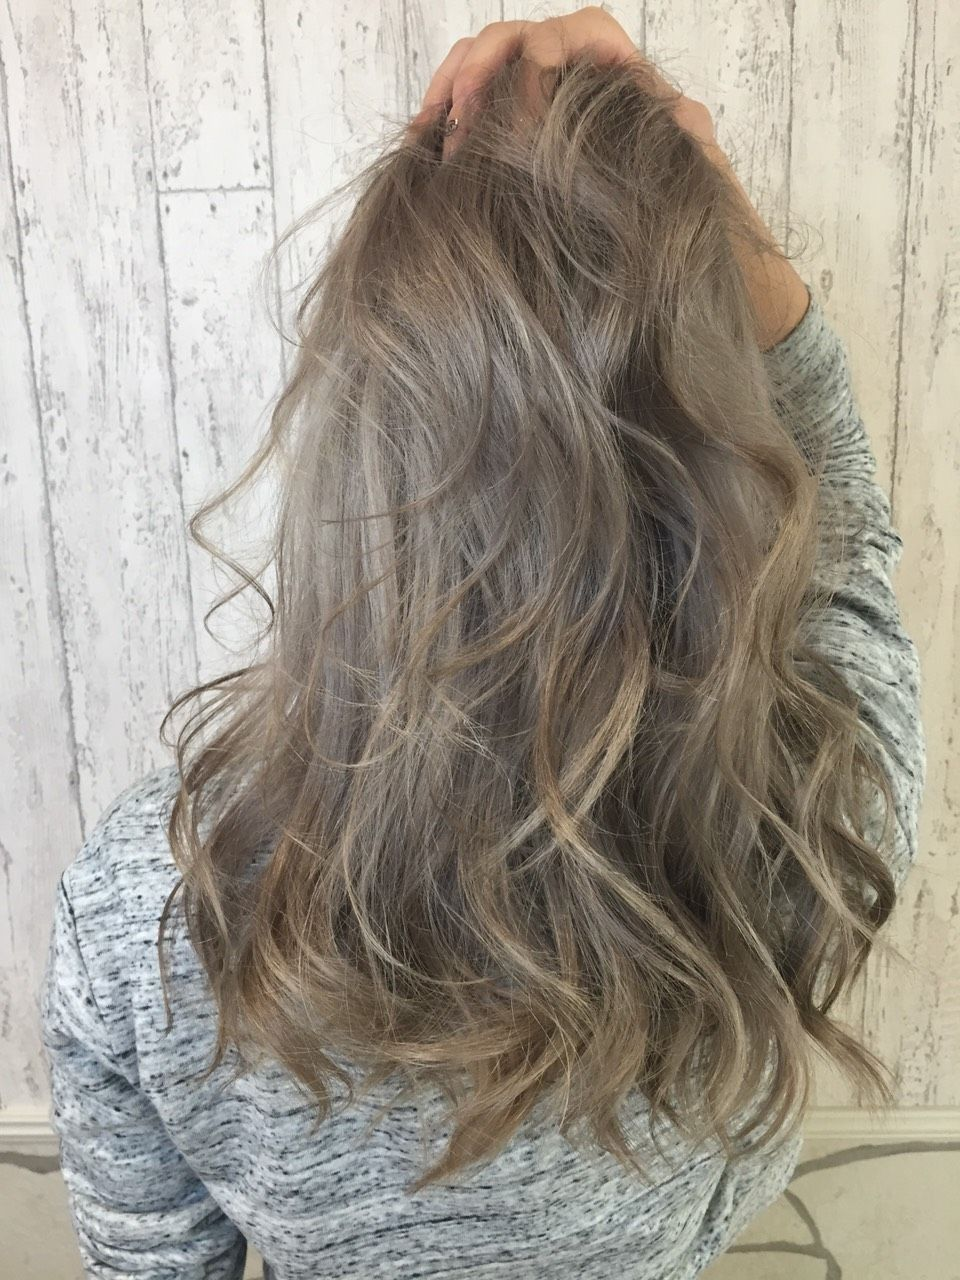 bob brown light dye com singapore extensions img ash hair girlhairdo lighting